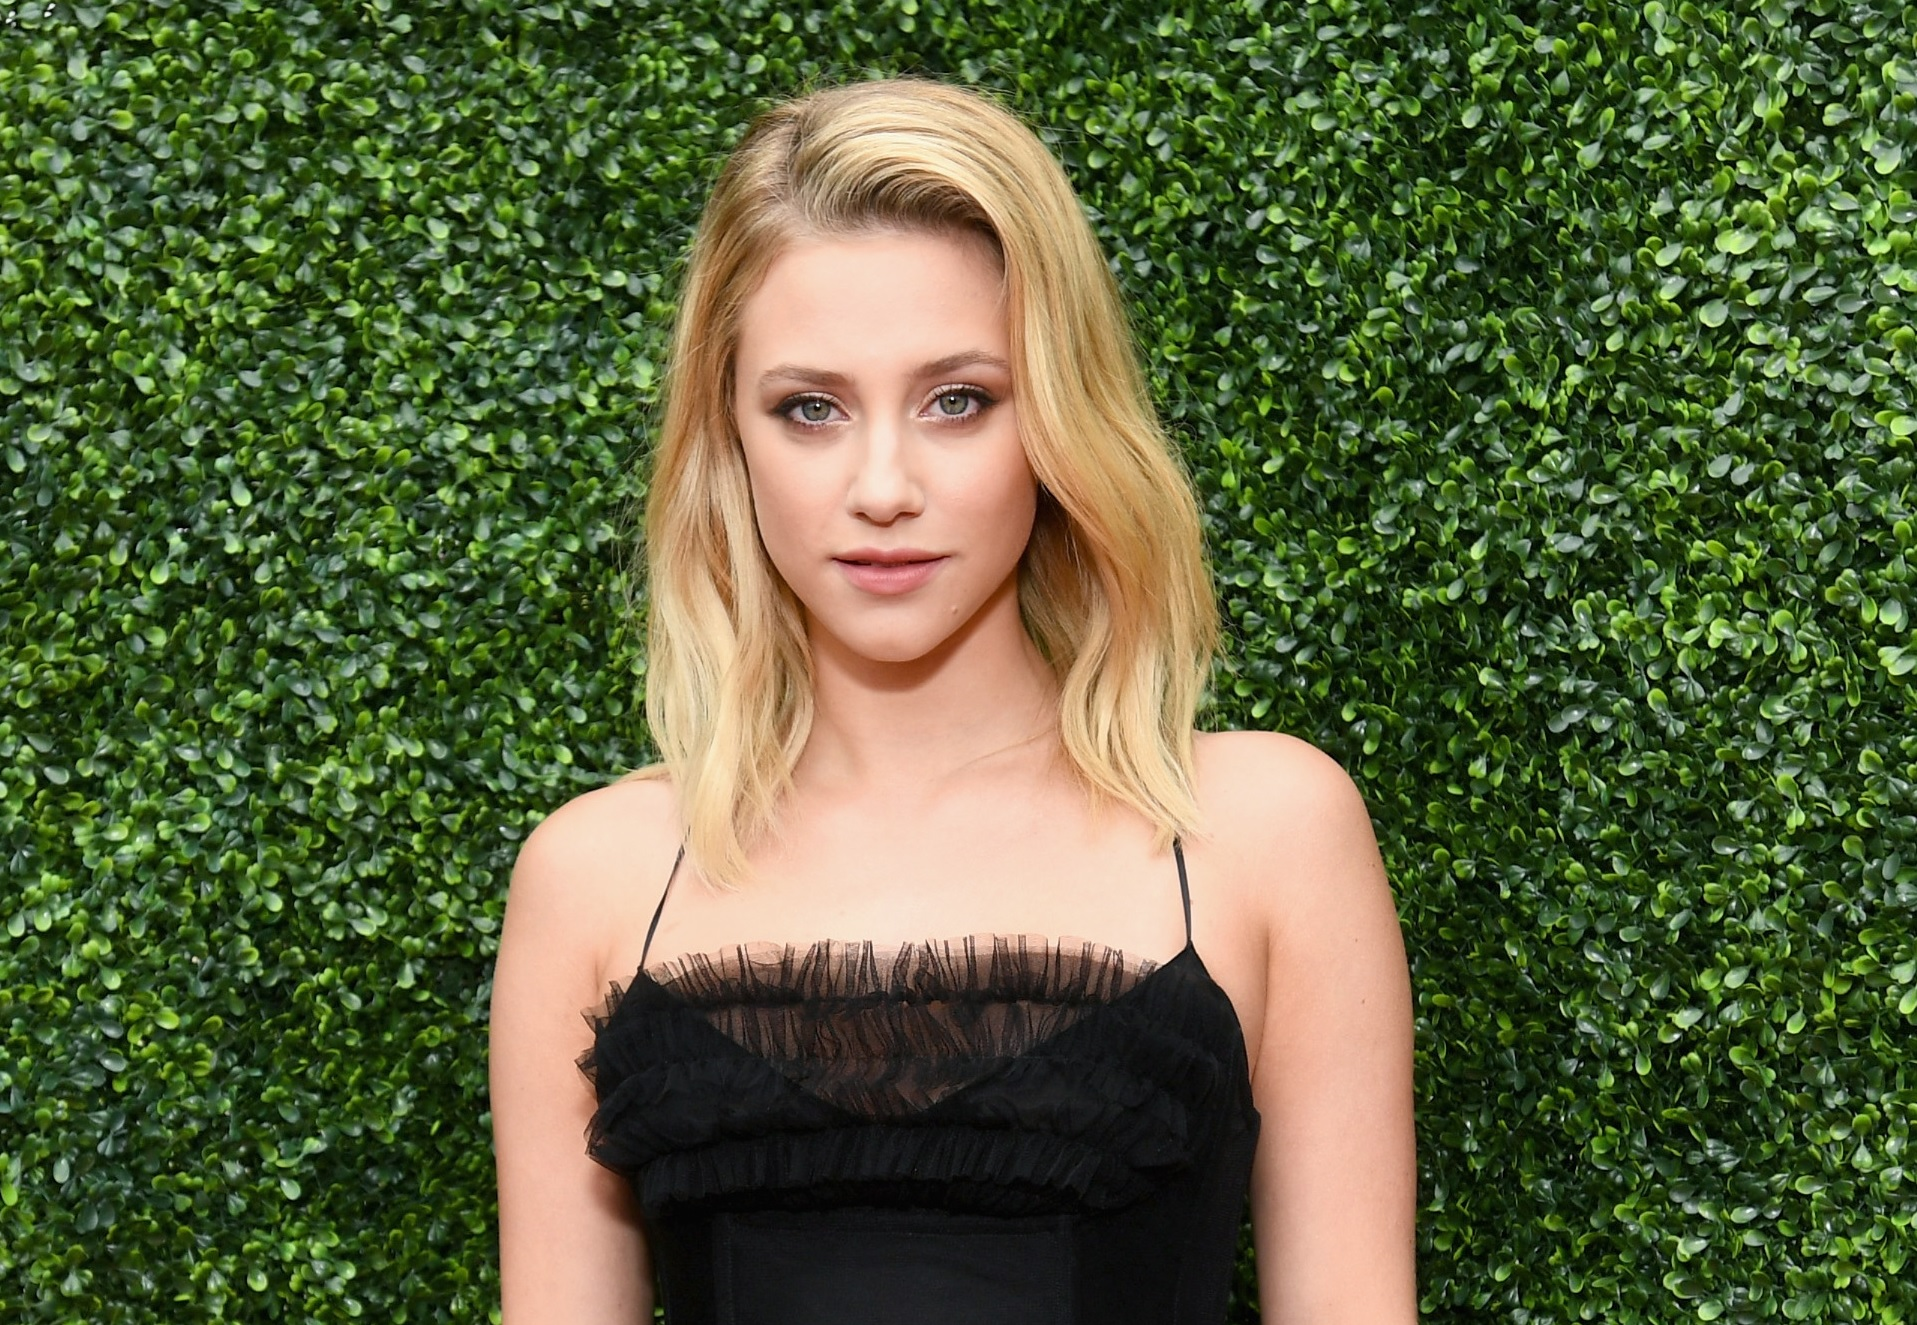 lili reinhart from riverdale on depression, breakup from cole sprouse